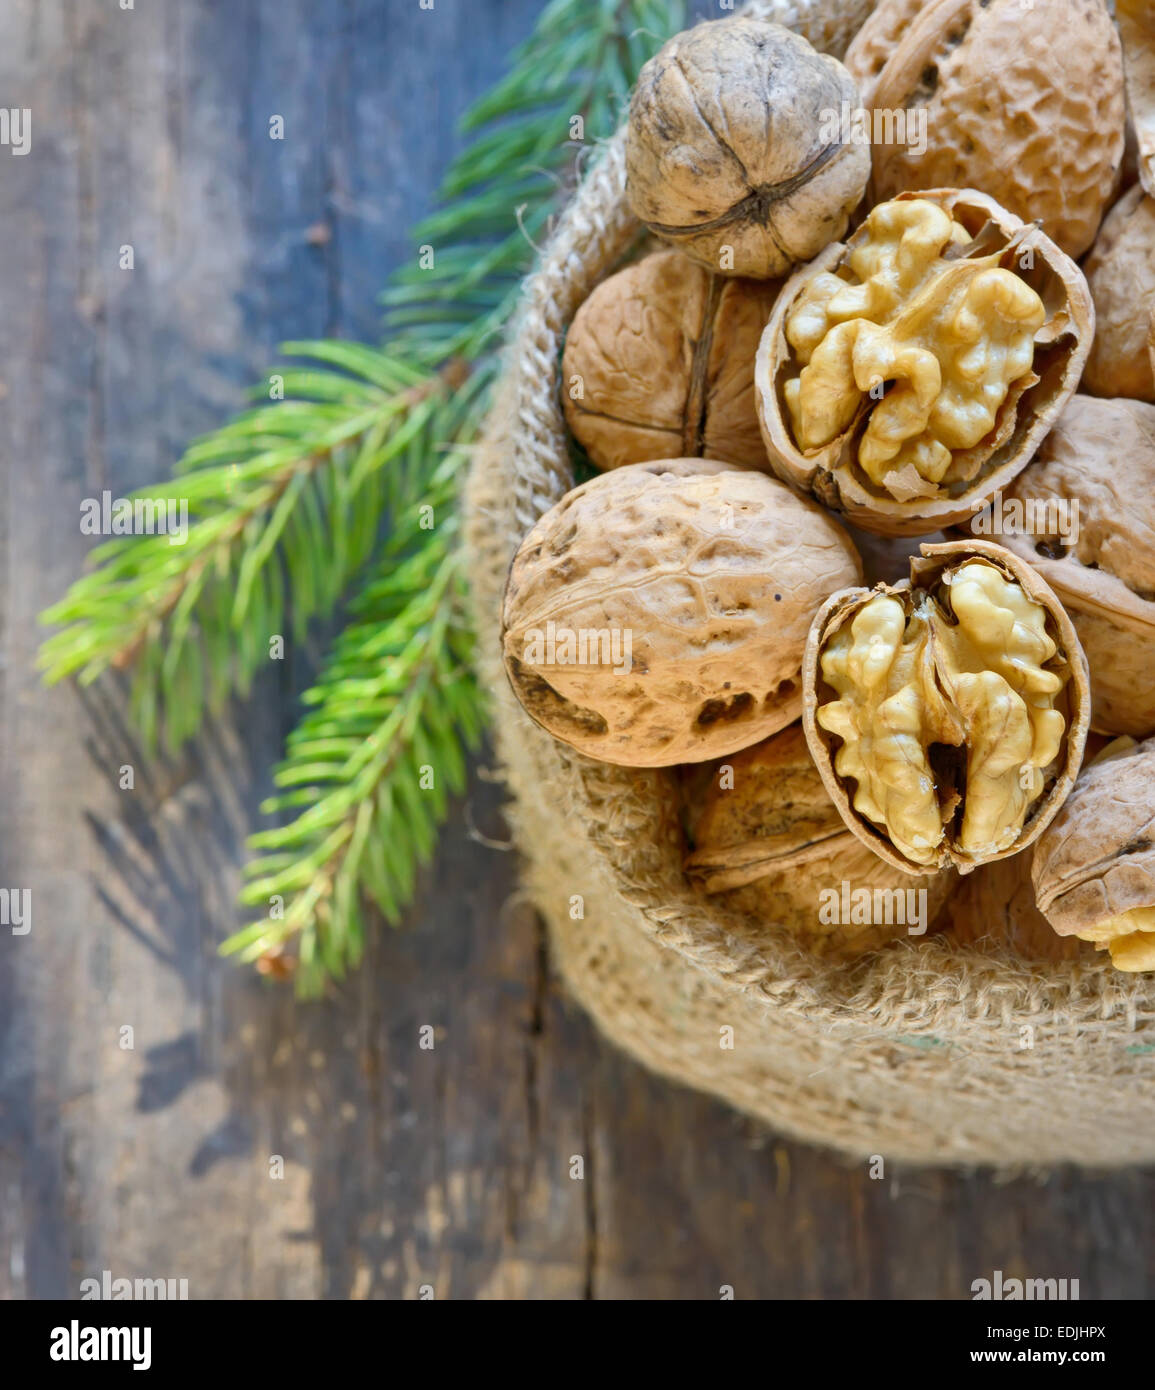 Christmas decoration with dried walnut in sack and pine tree twigs - Stock Image